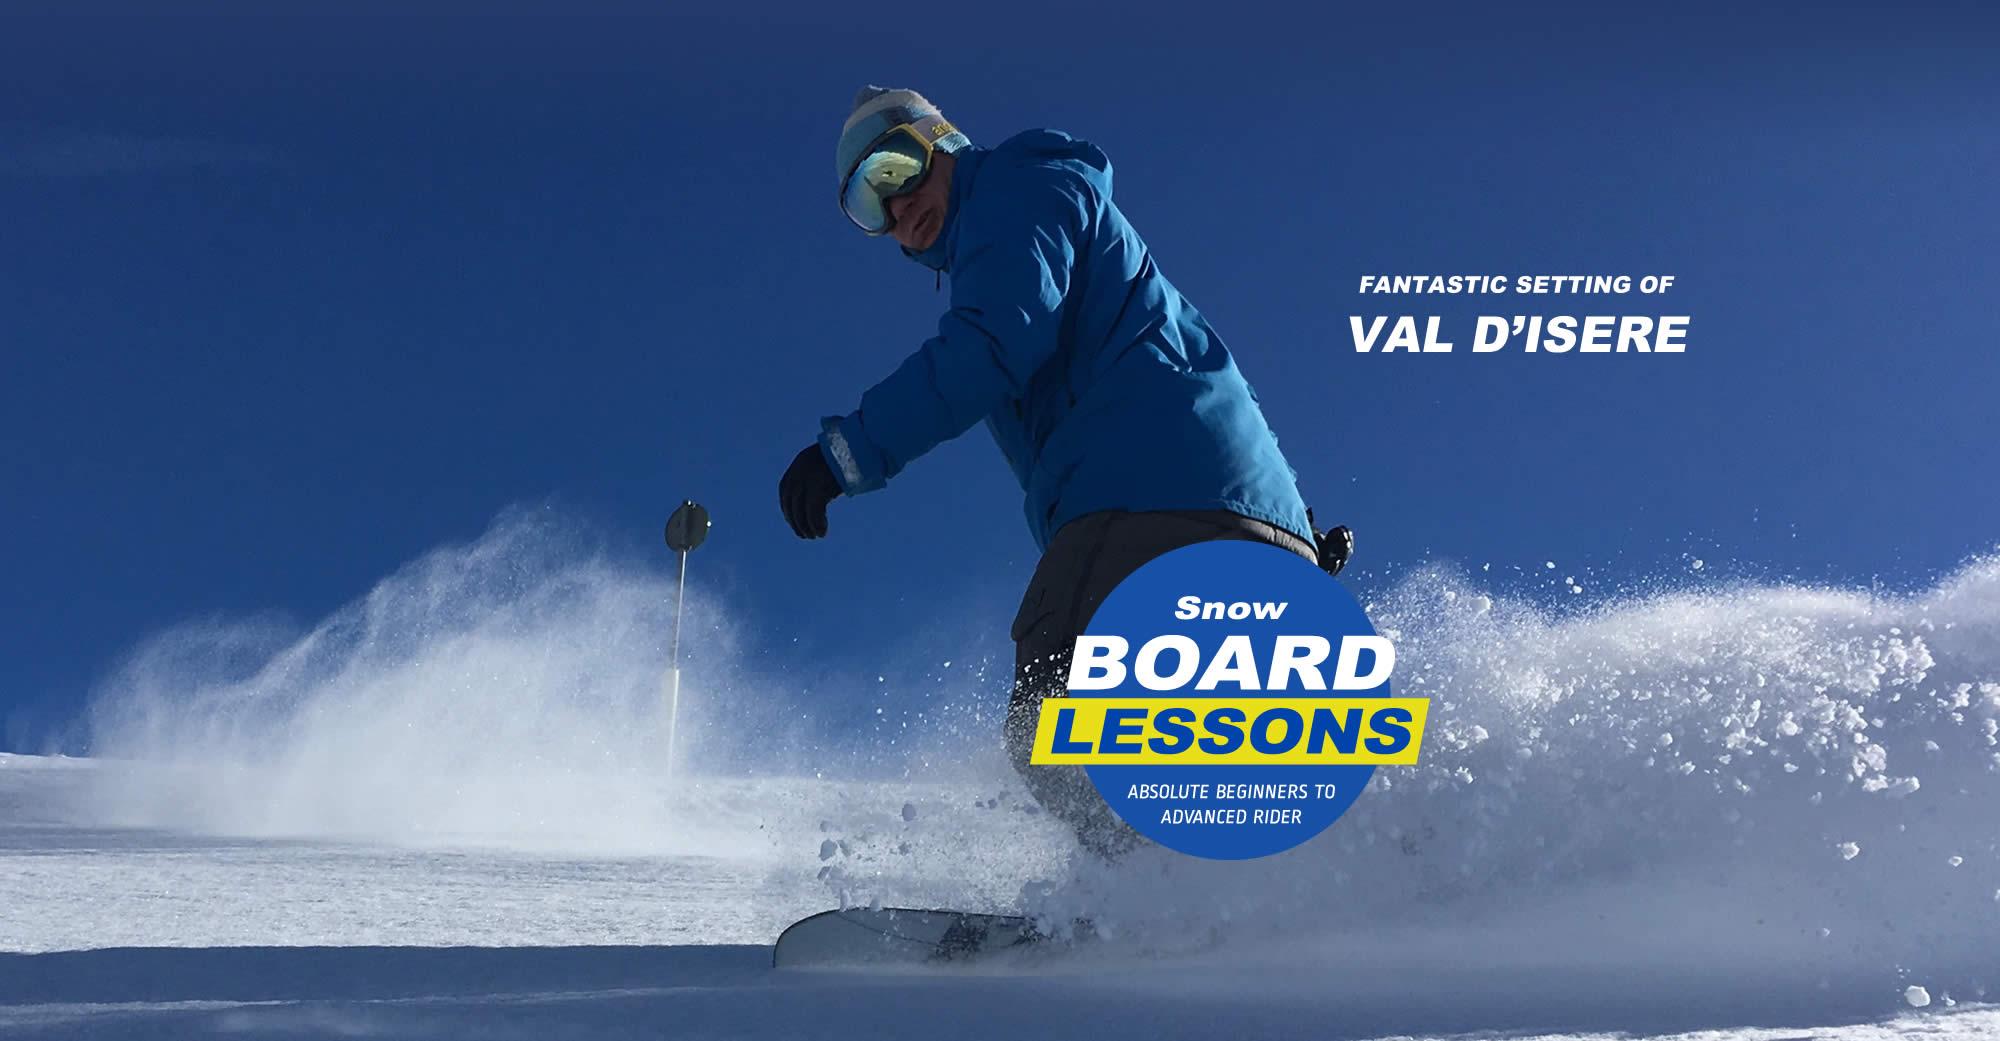 Snowboarding Instructors at Val d'Isere in the French Alps